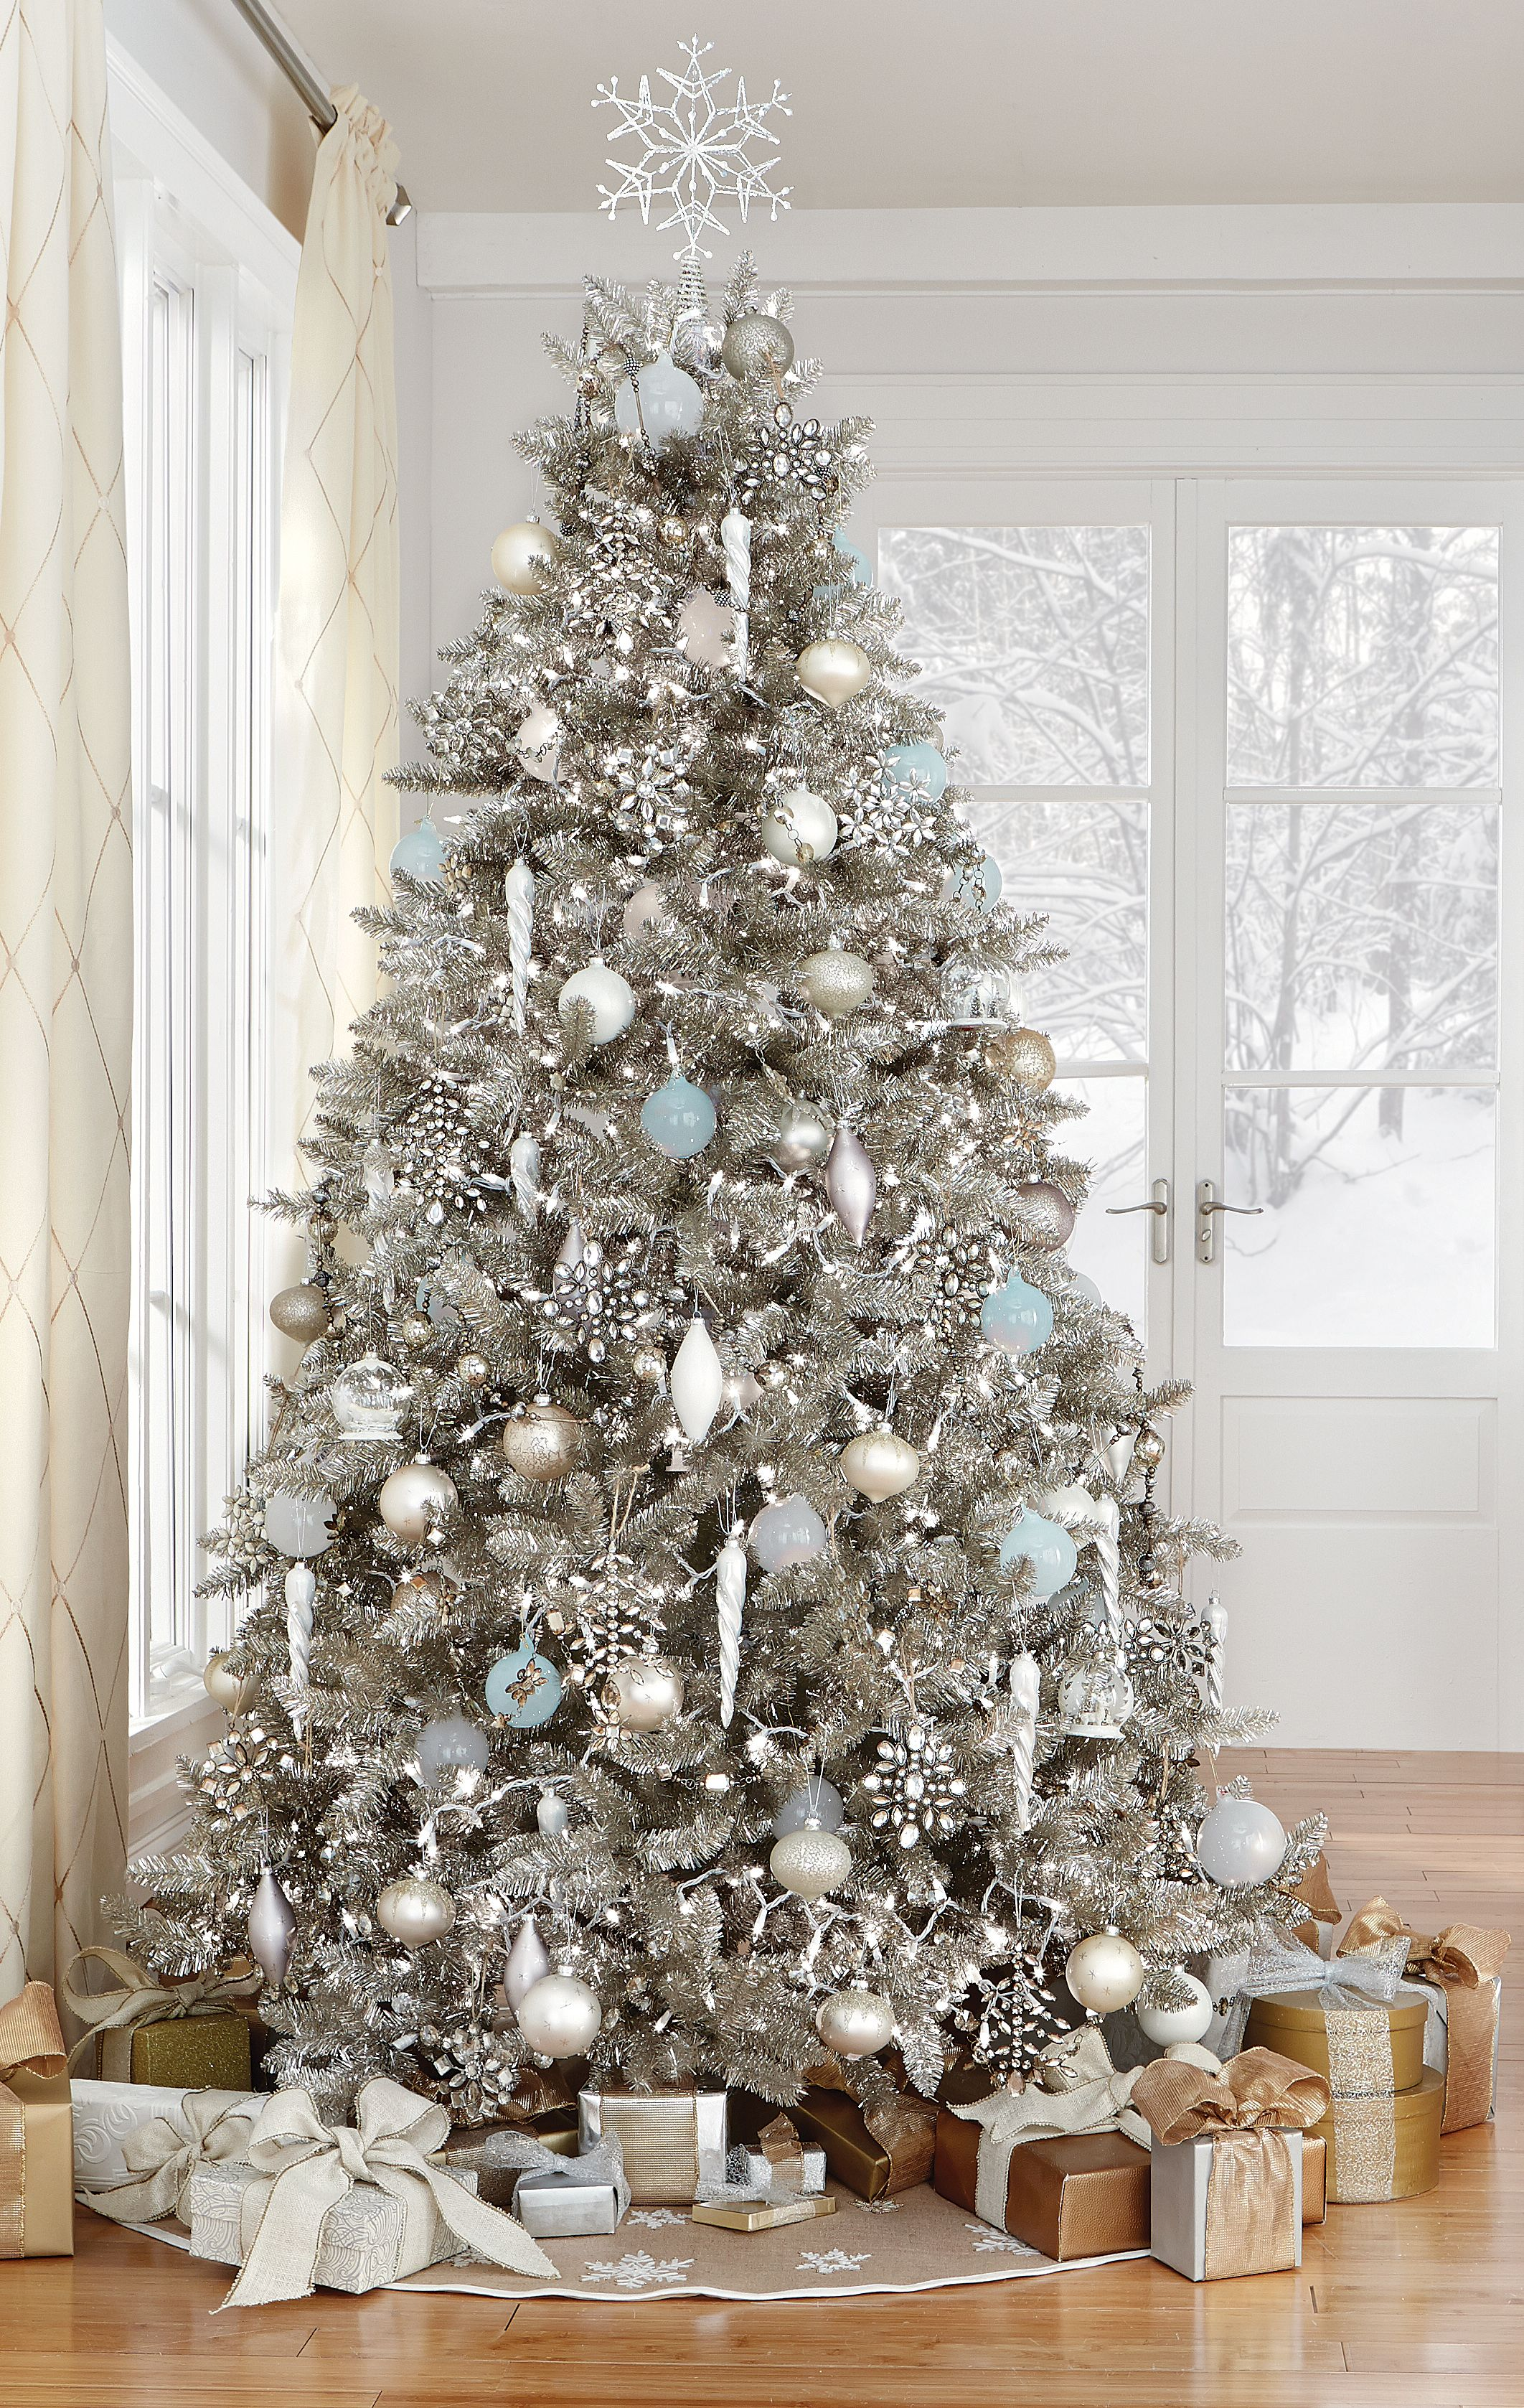 Stunning In Silver Homedecorators Com Holiday2015 Silver Christmas Tree Beautiful Christmas Trees Silver Christmas